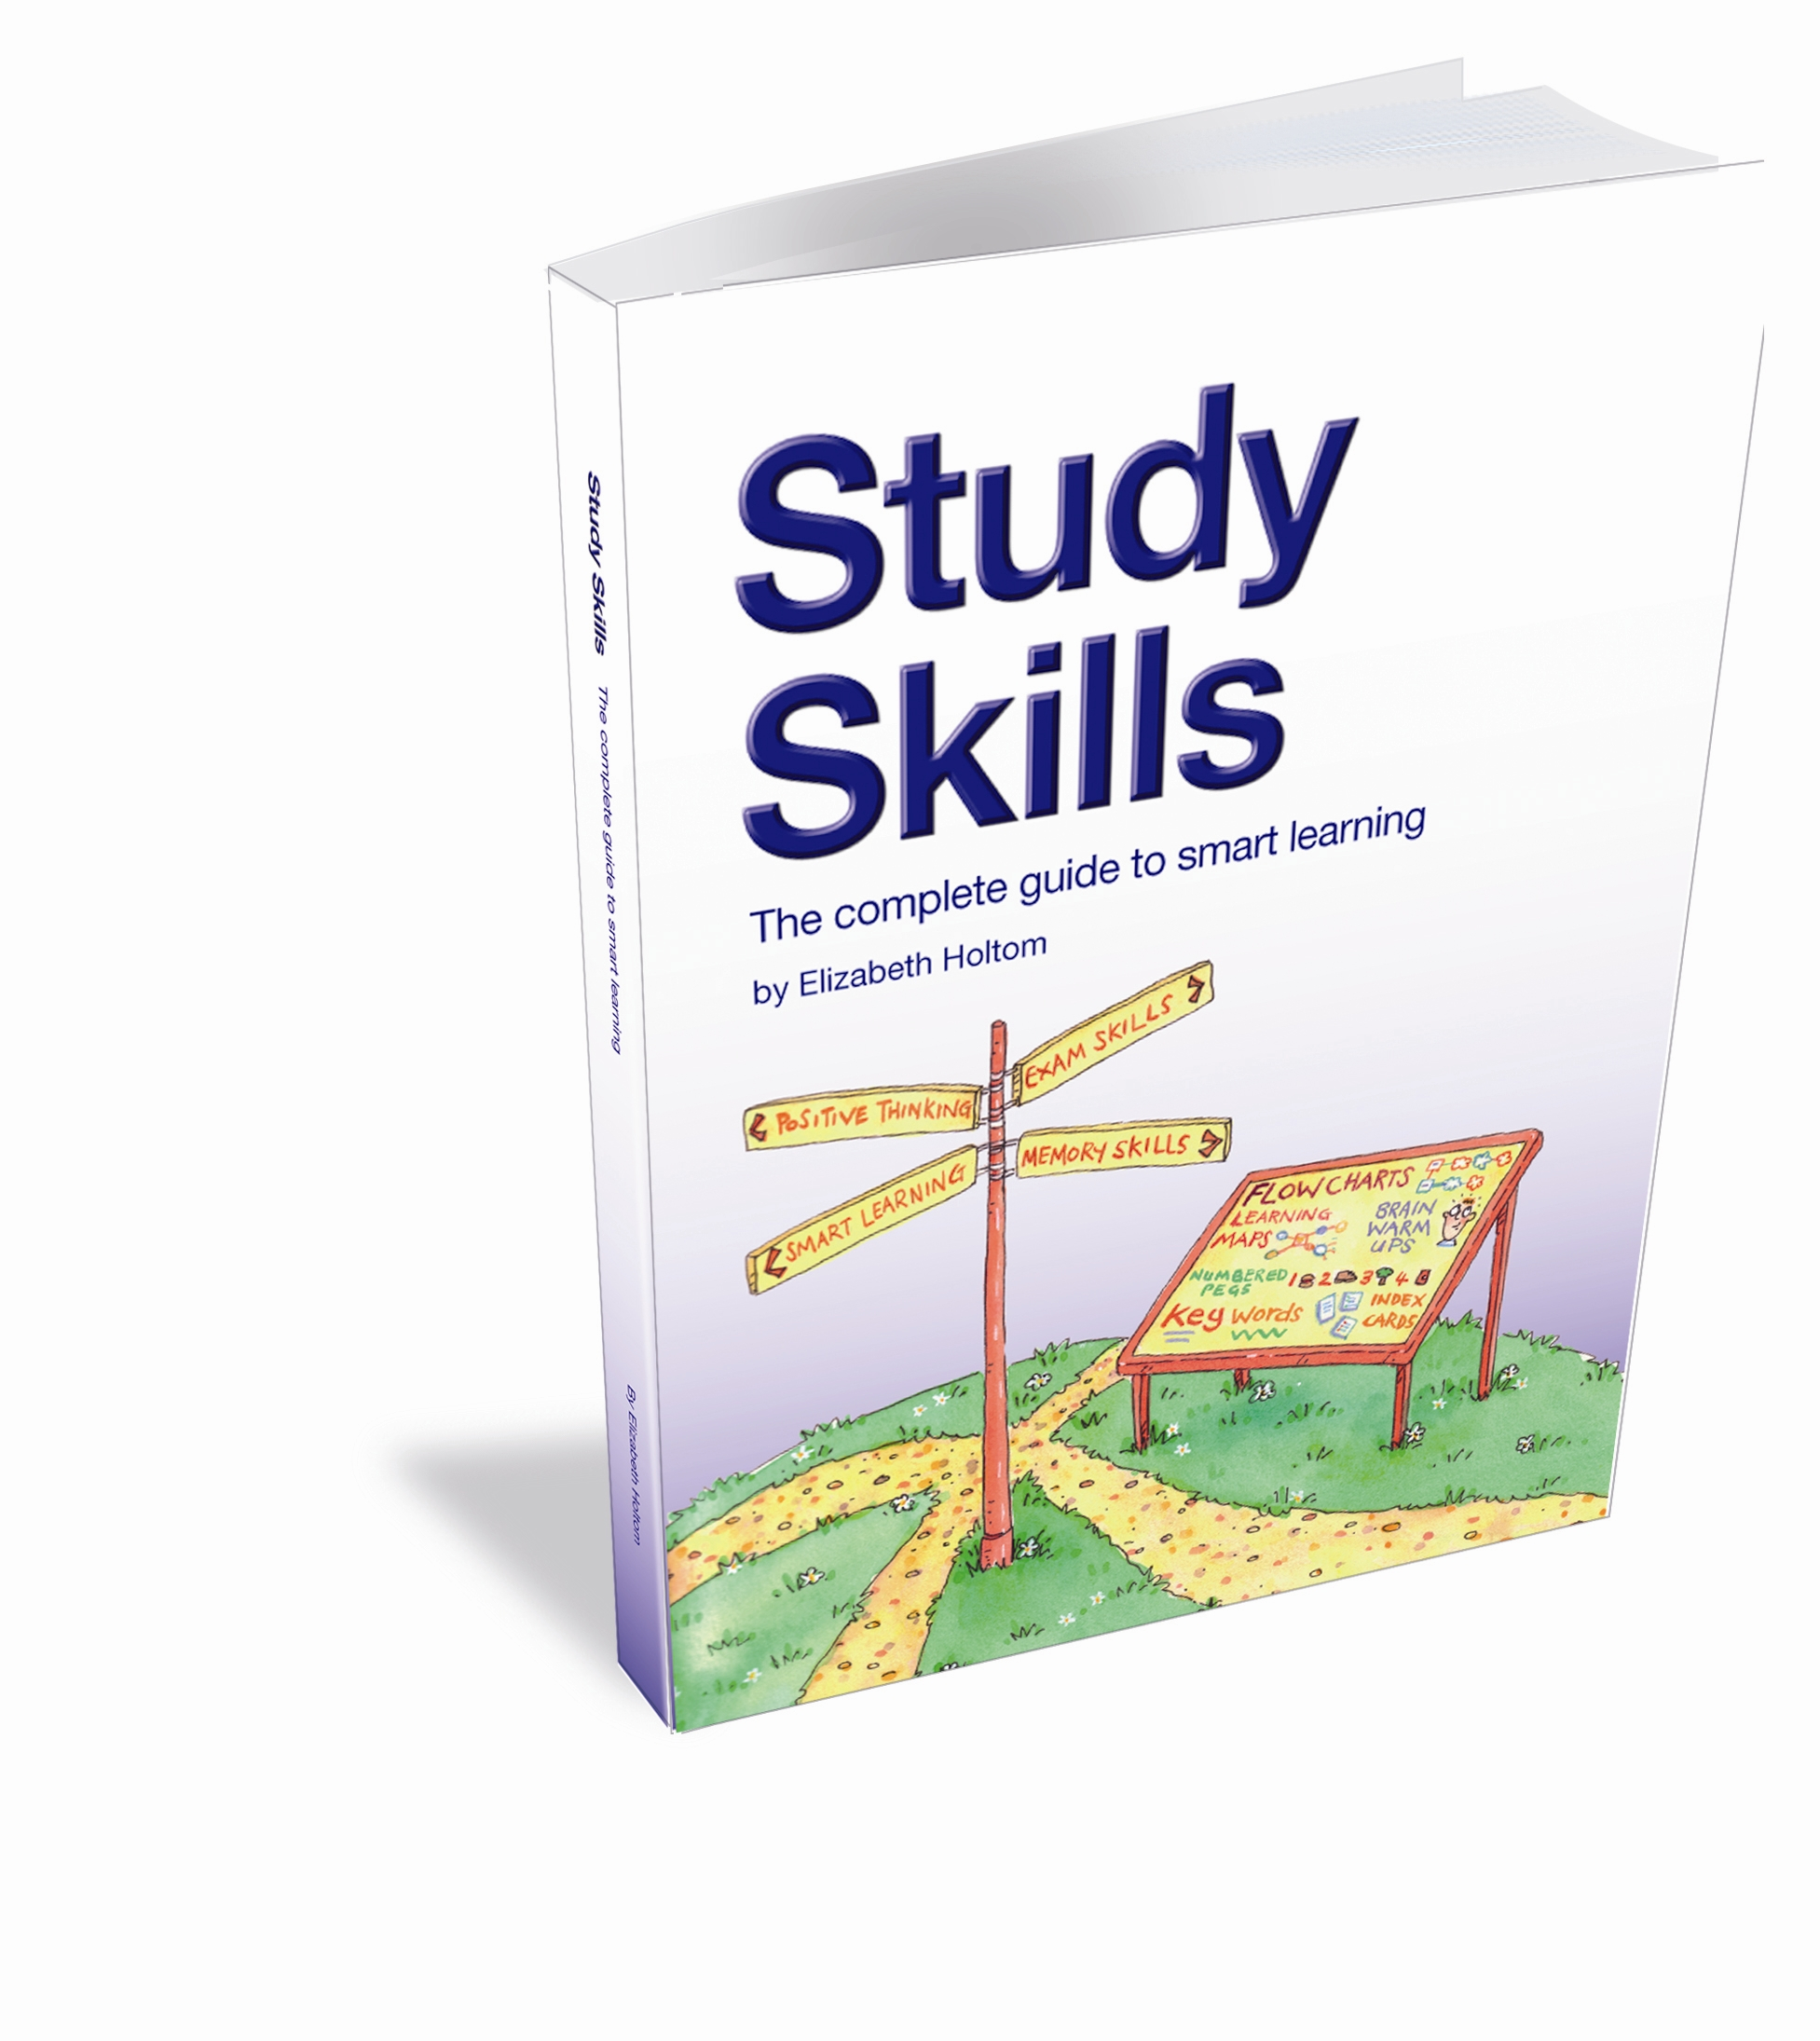 study skills essay pixels writing study skills university of manchester